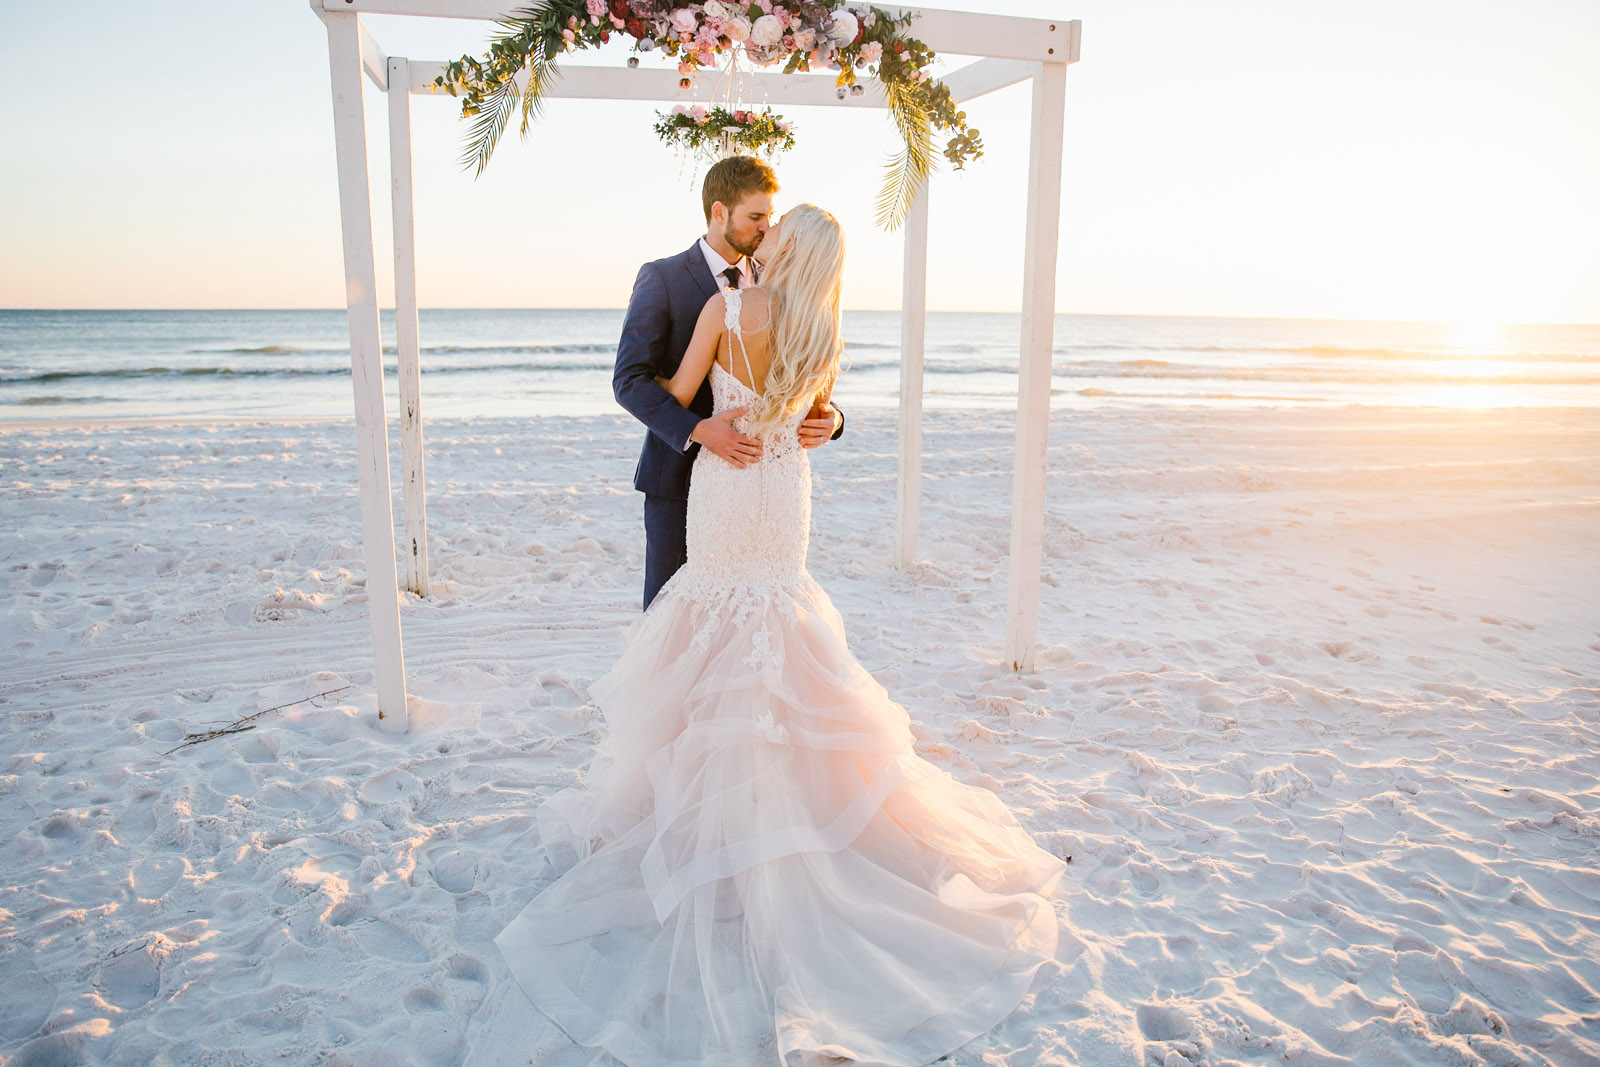 Beach‌ ‌Wedding‌ ‌Ideas‌ ‌for‌ ‌your‌ ‌Special‌ ‌Day‌